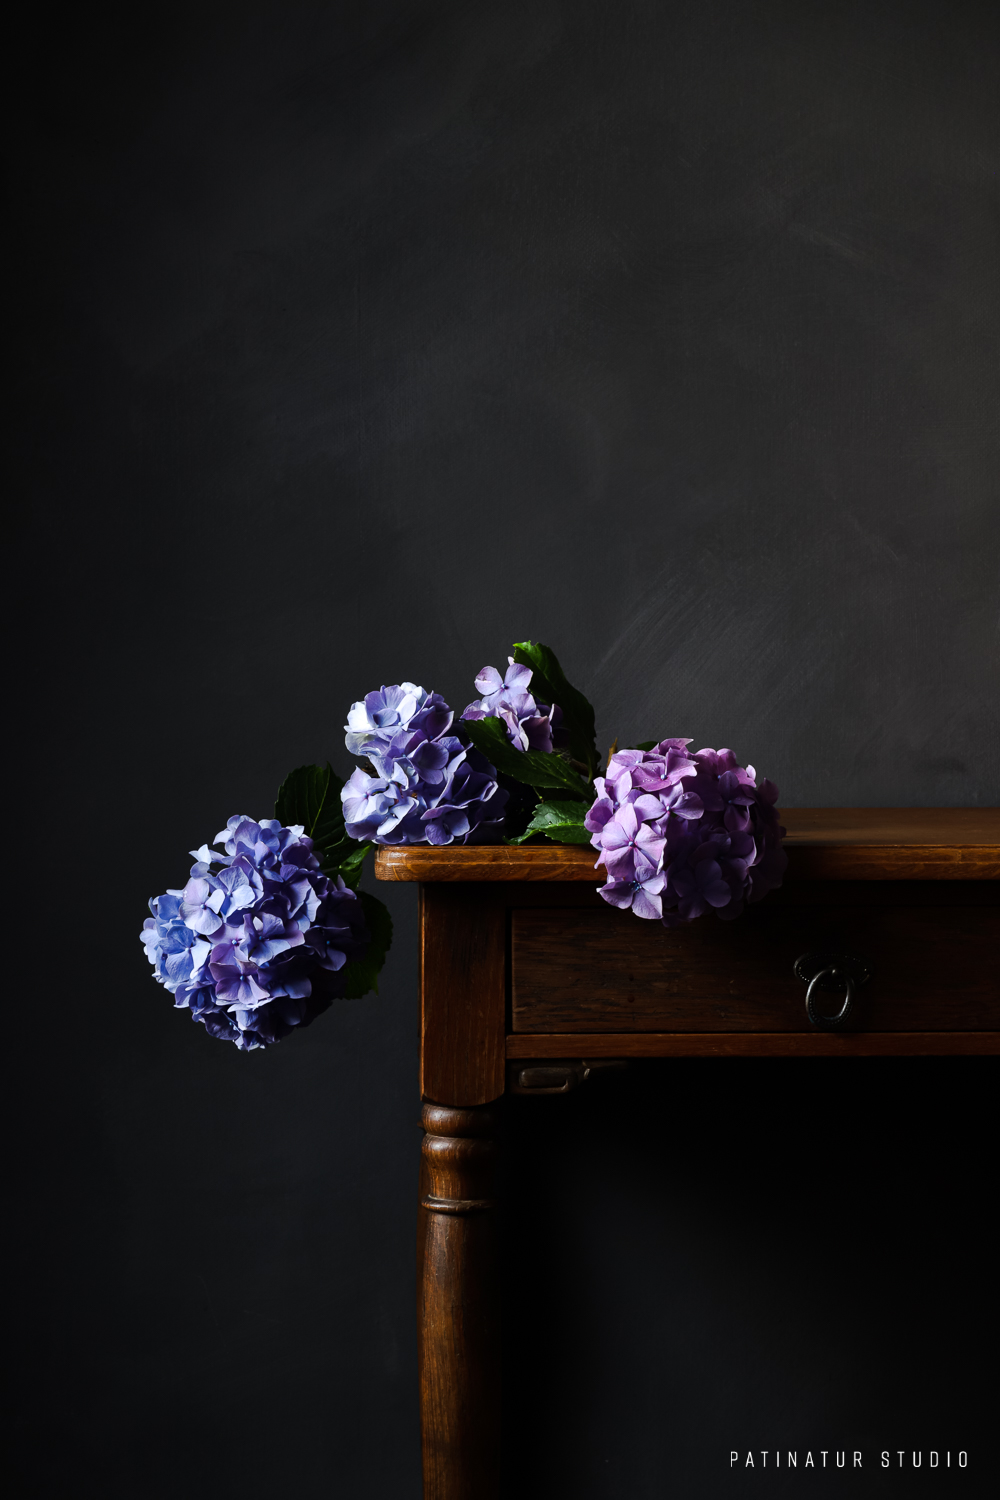 Photo art | Dark and moody still life with hydrangeas lying on wooden vintage side table